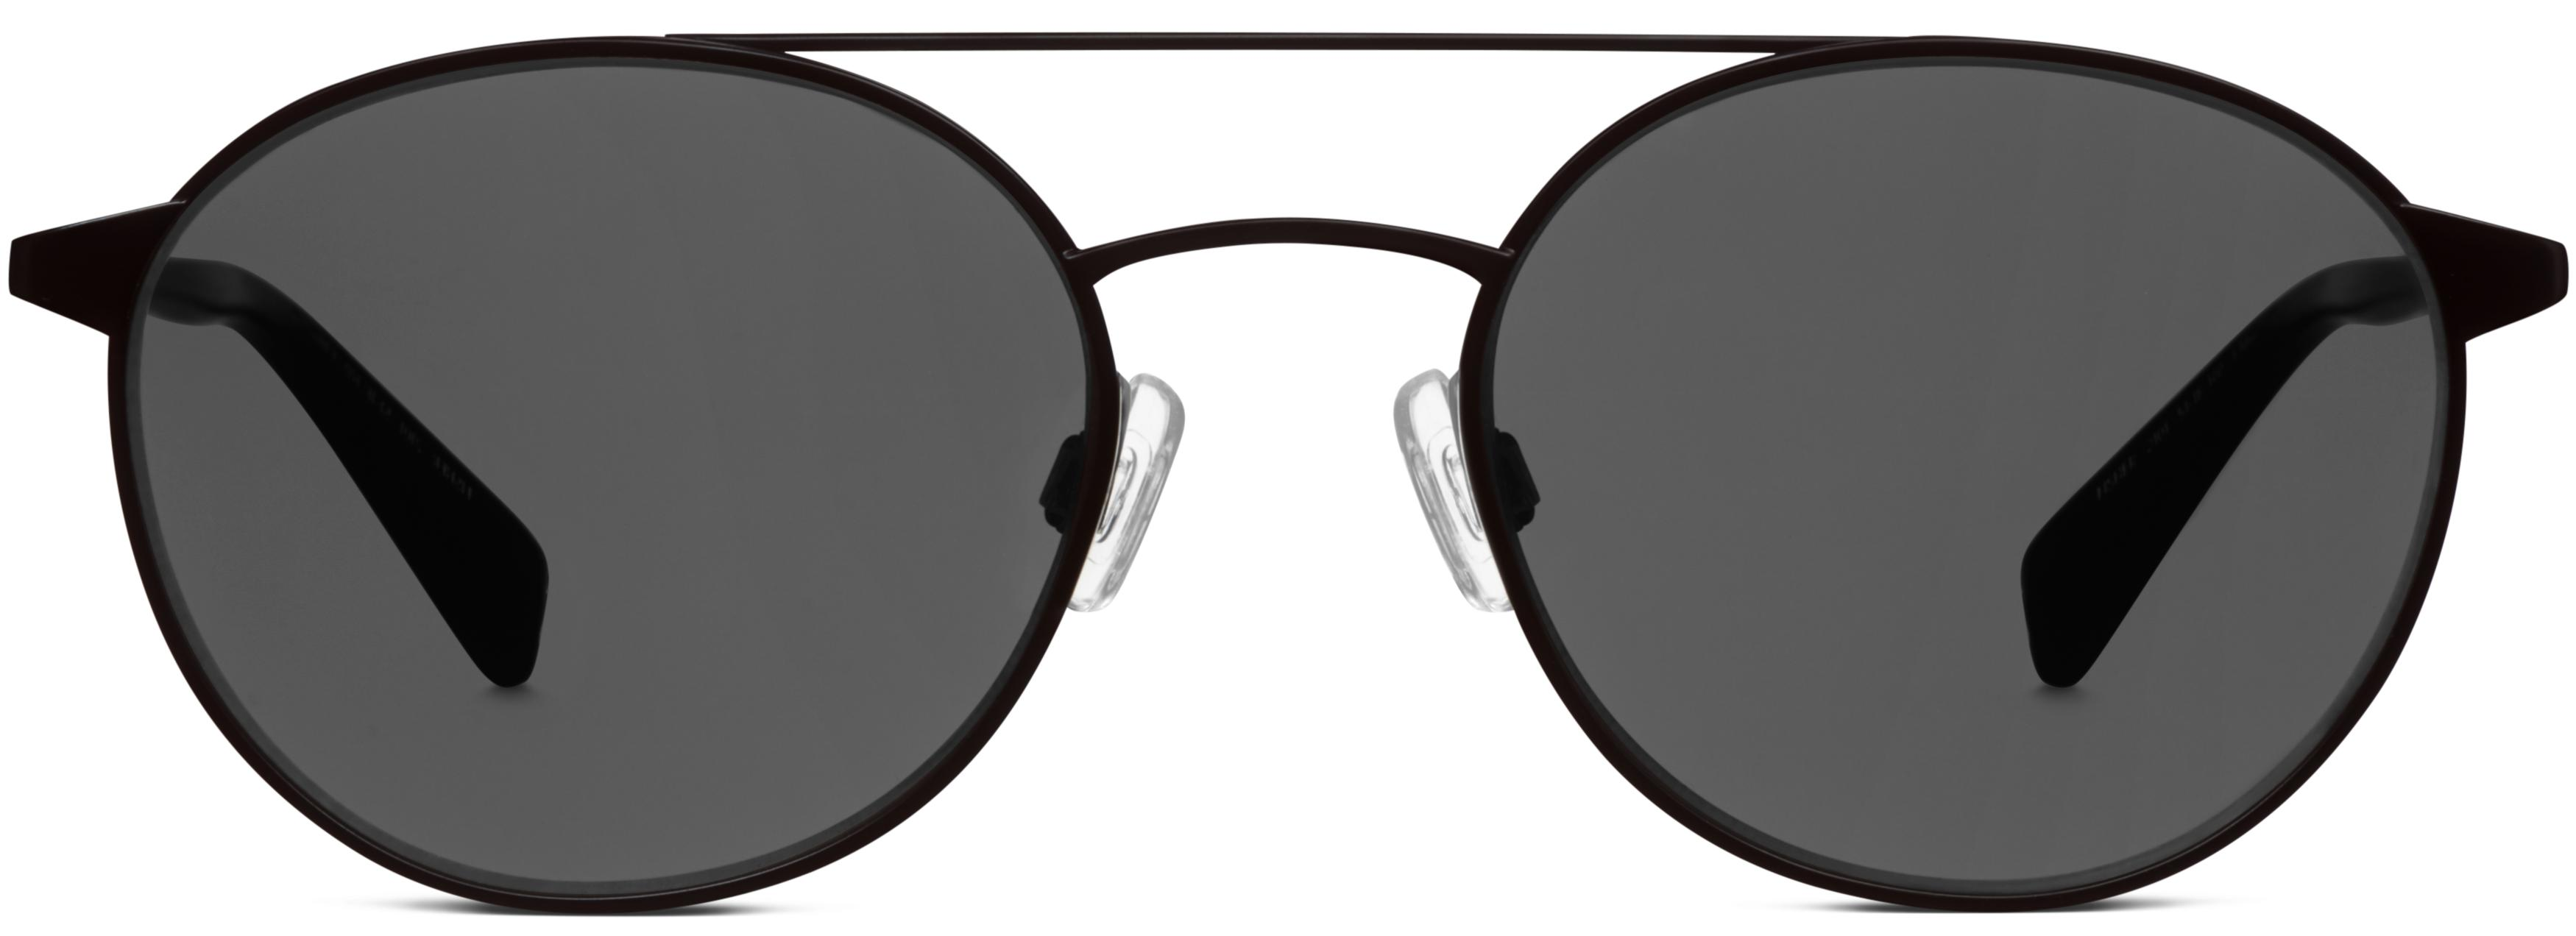 3500x1272 Fisher Sunglasses In Brushed Ink With Classic Grey Lenses For Men